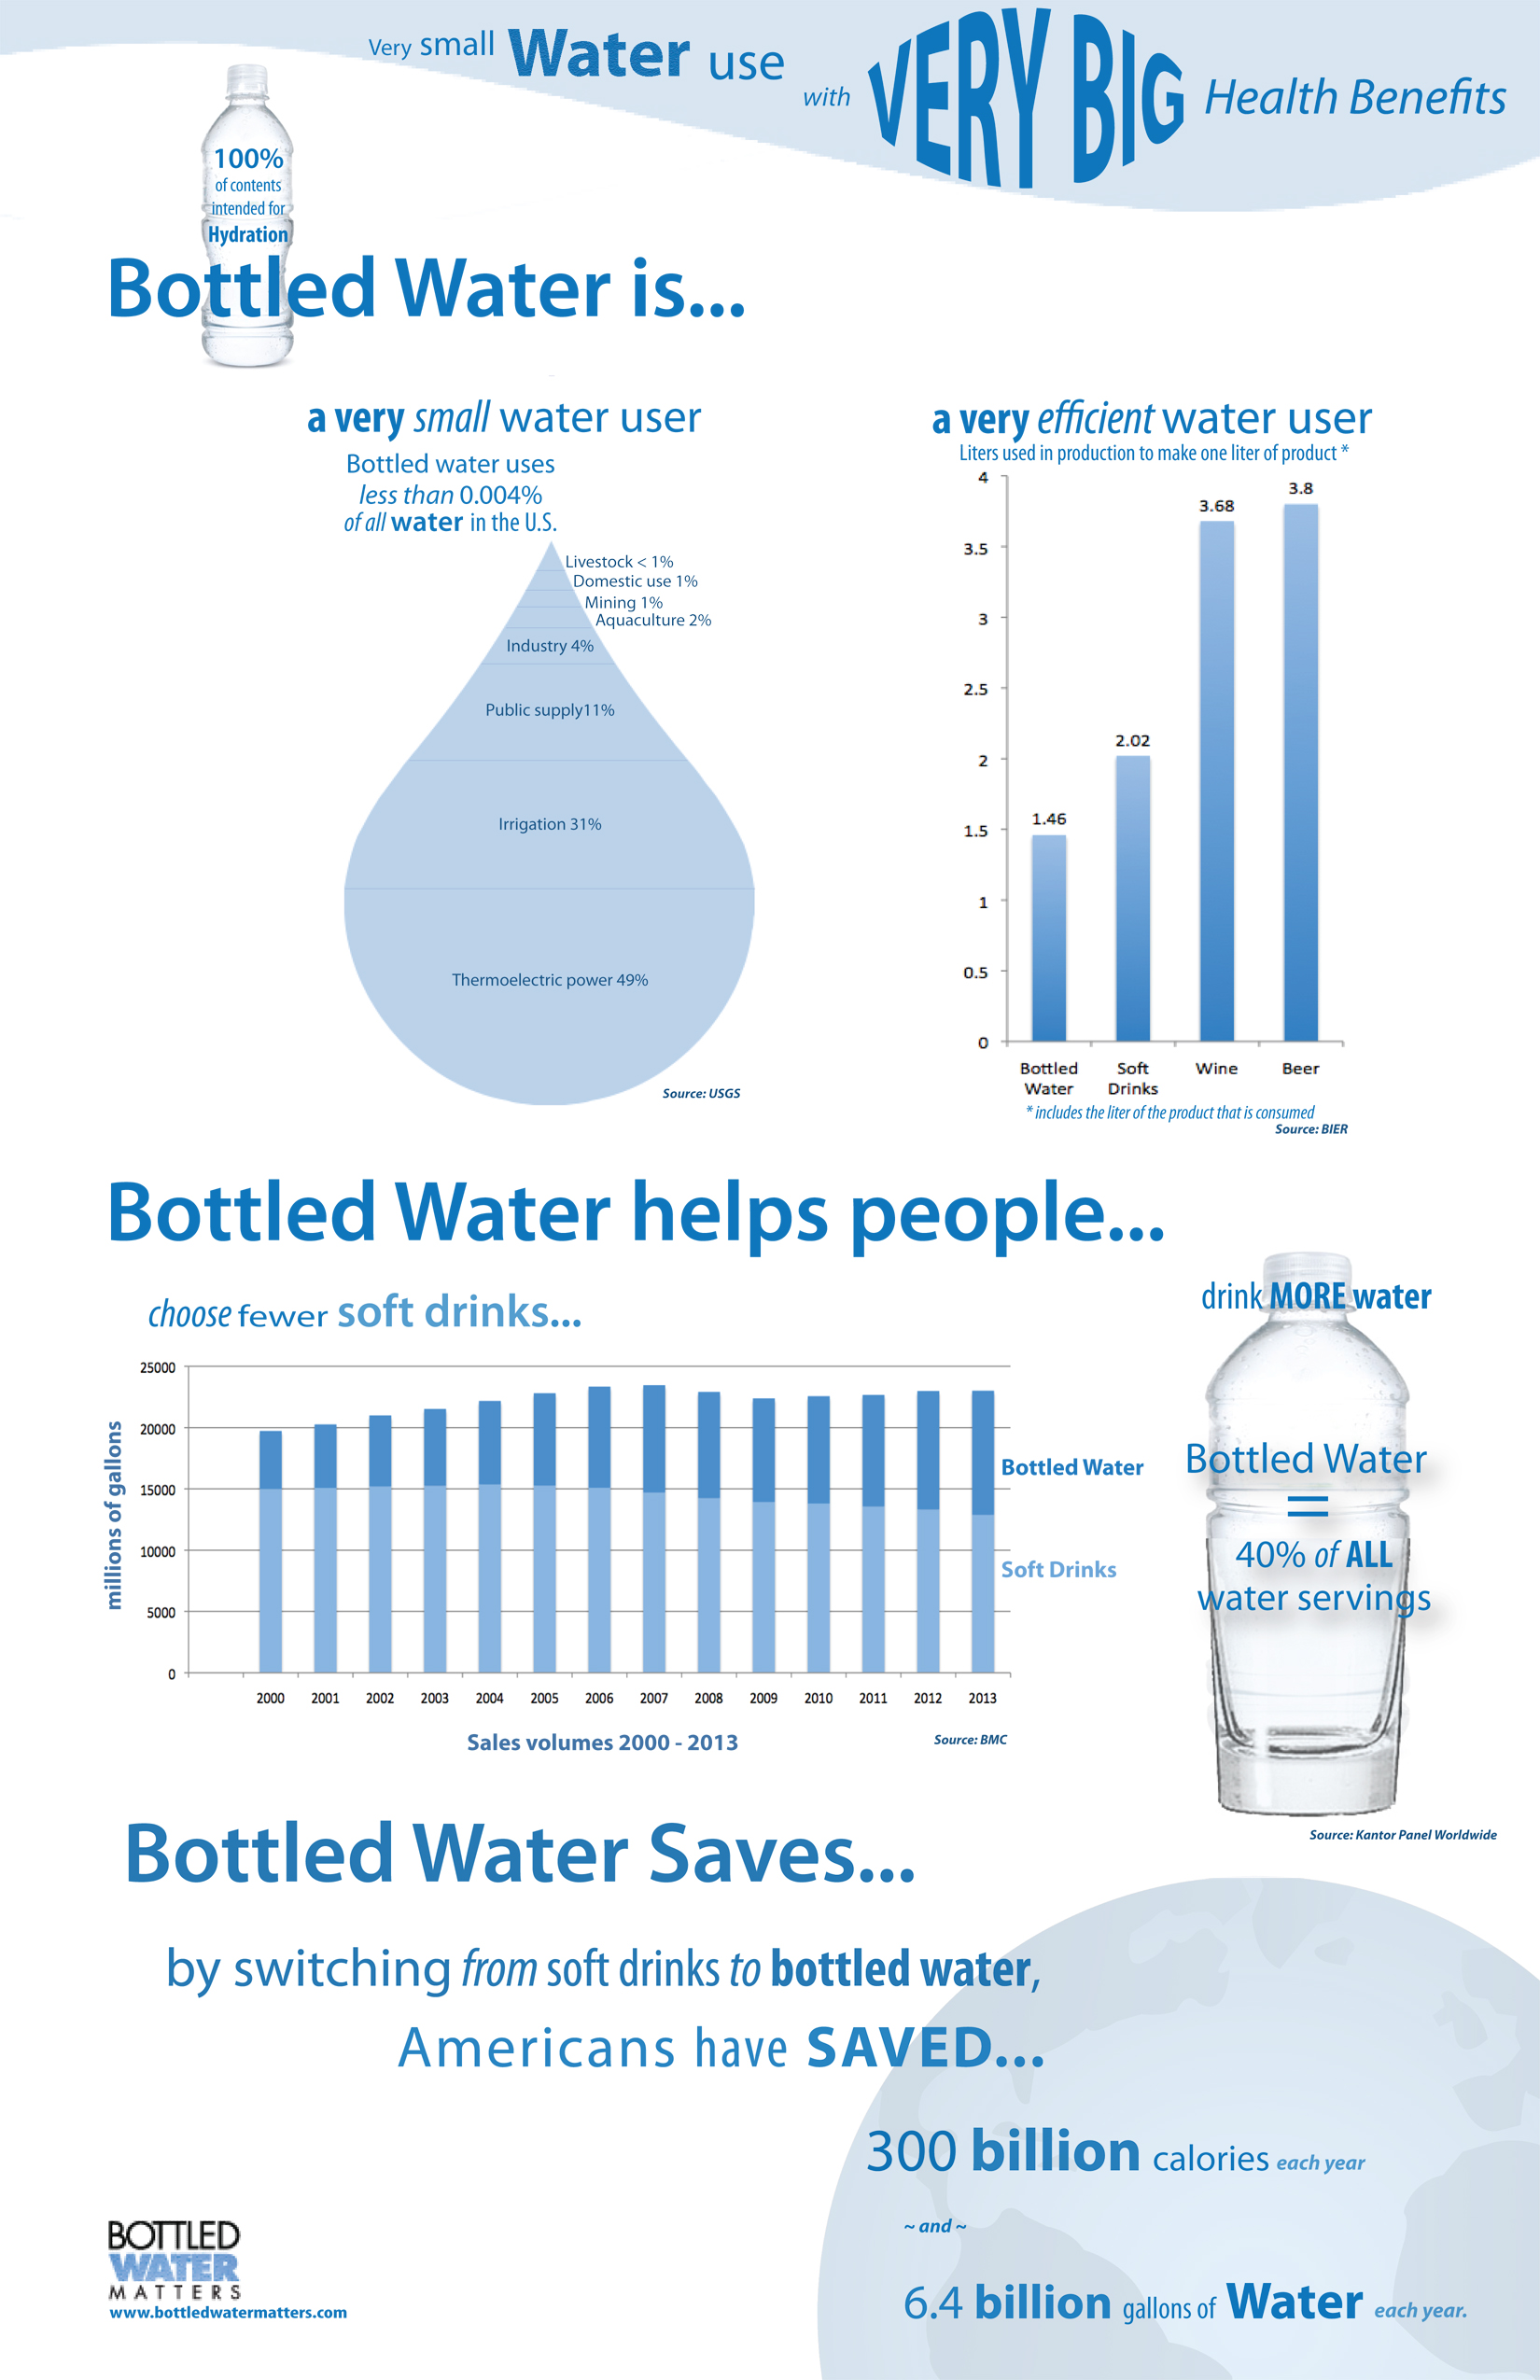 Bottled Water Has Lowest Water And Energy Use Ratios Among